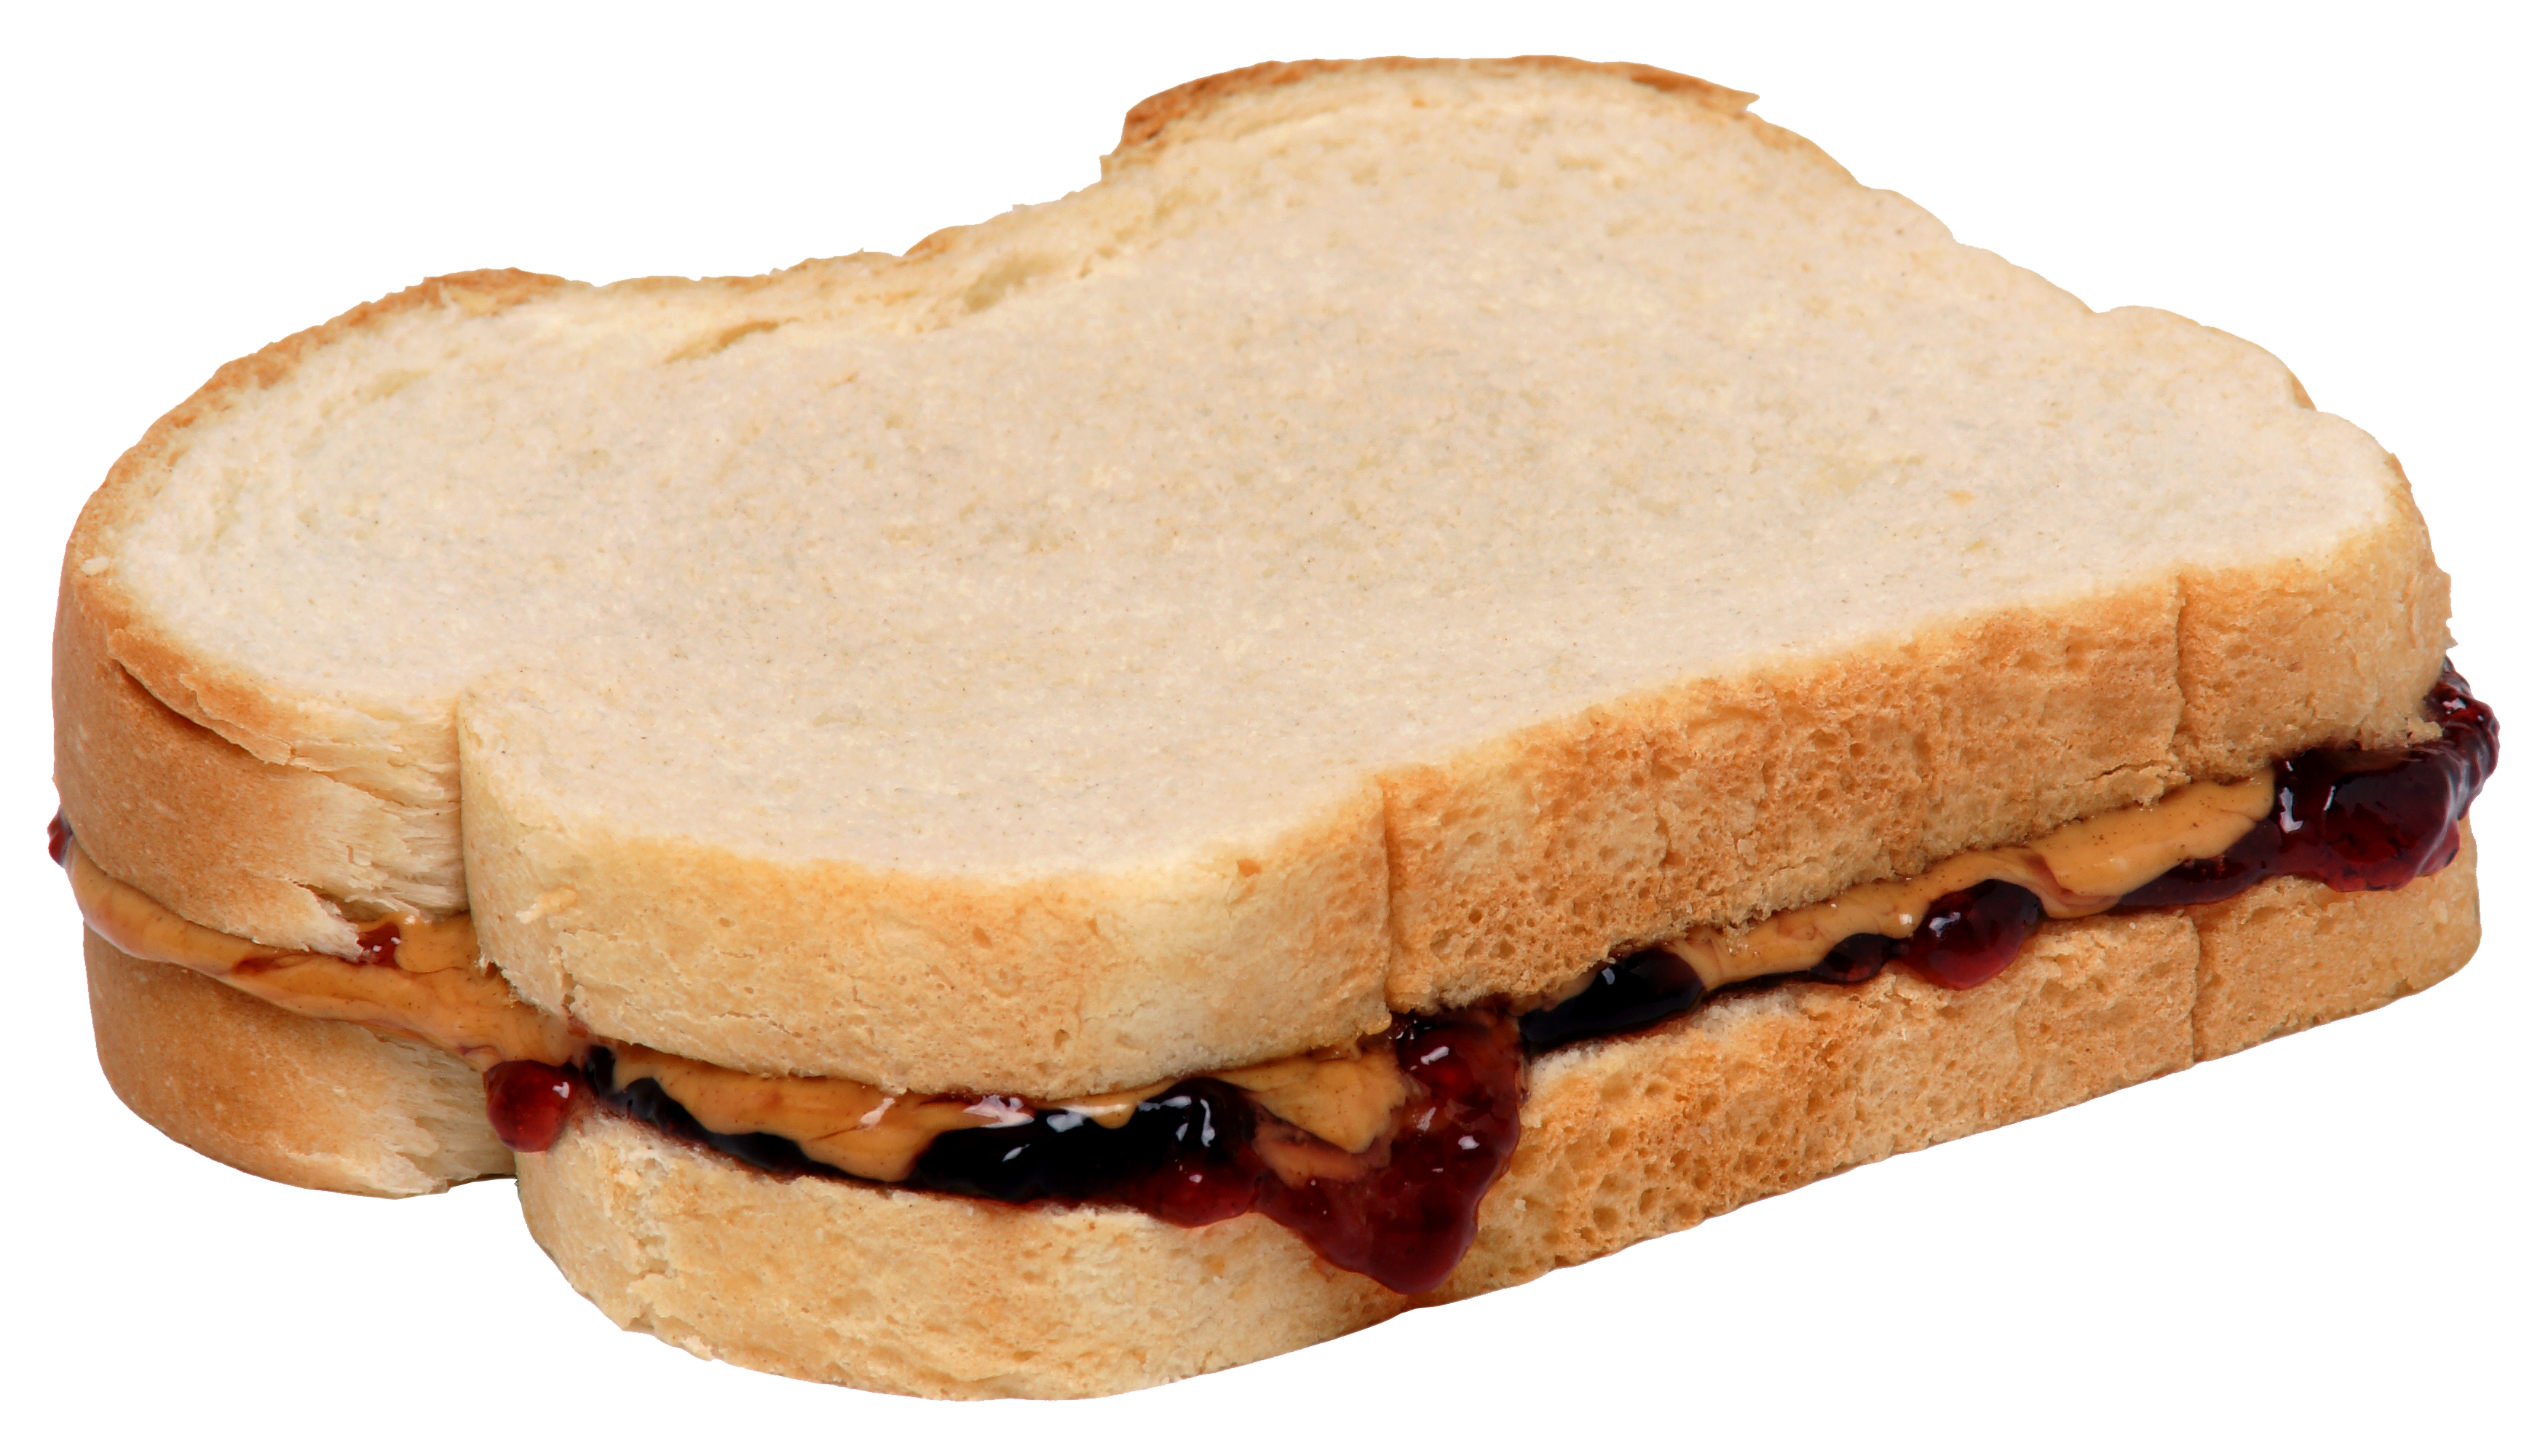 Peanut-Butter-Jelly-Sandwich.png